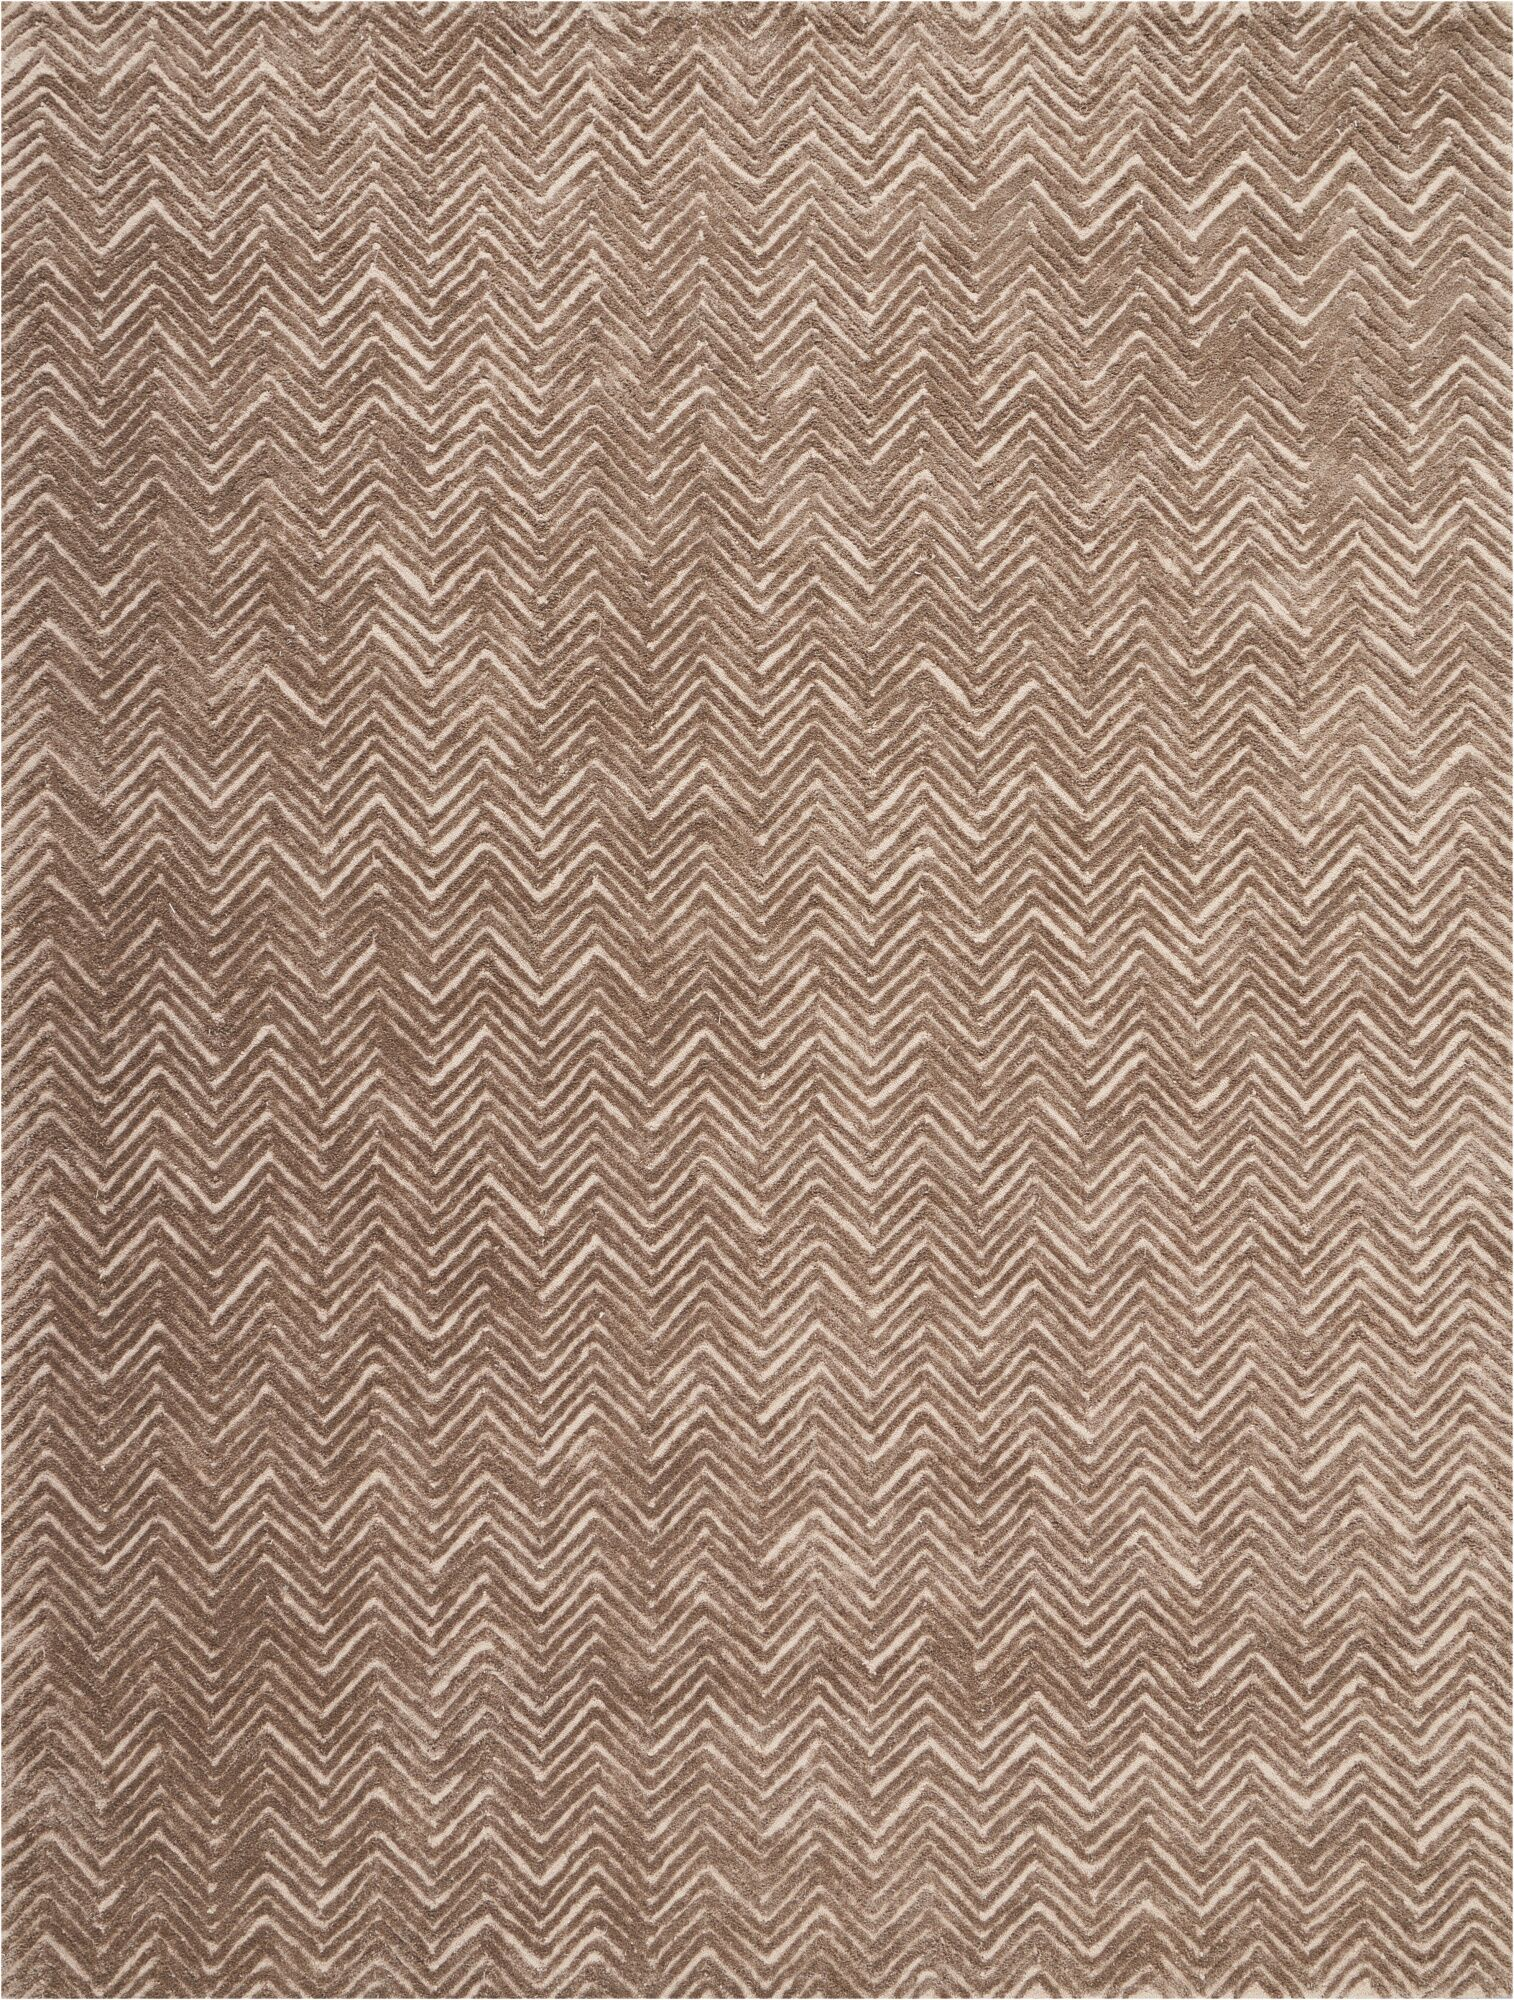 Manuel Deco Hand-Tufted Taupe Area Rug Rug Size: Rectangle 8' x 10'6